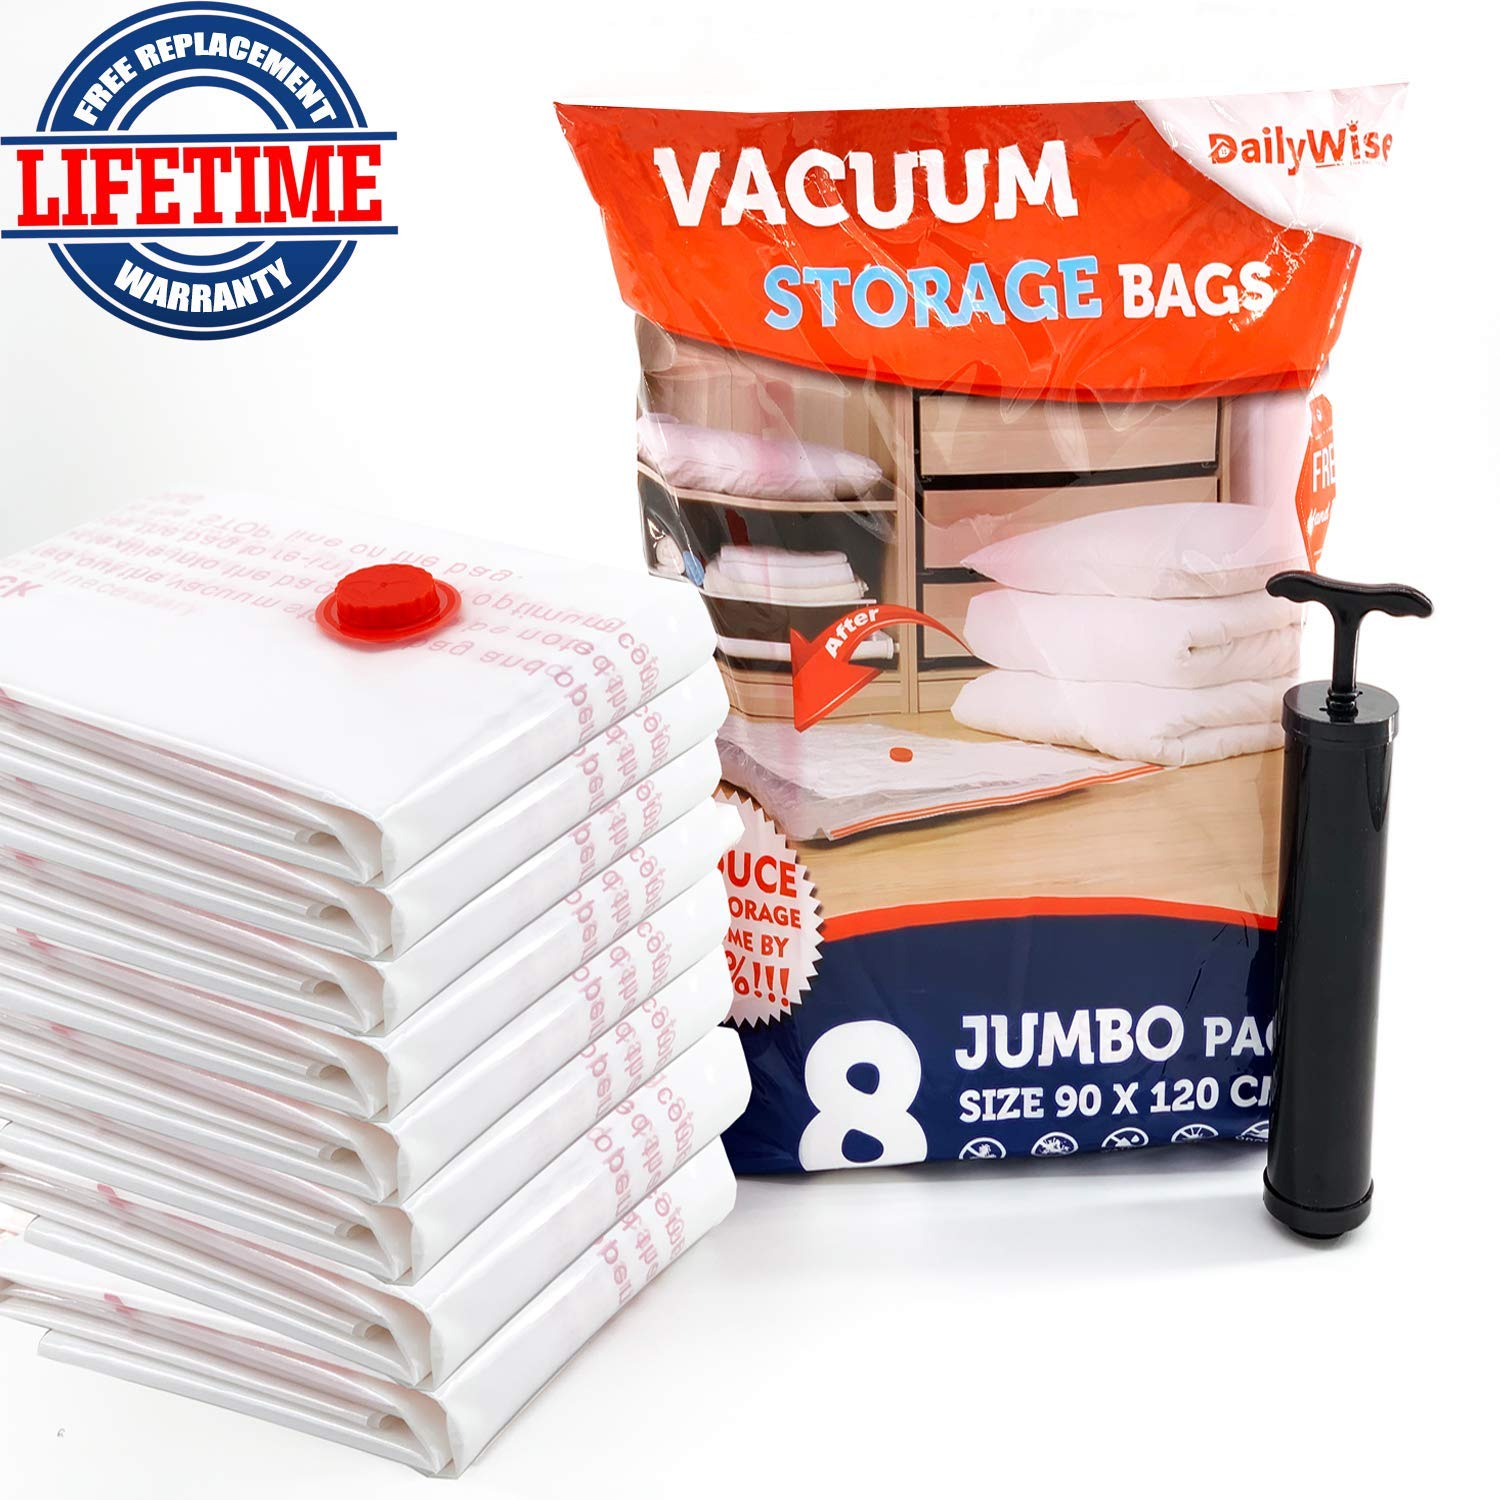 DailyWise Extra Large Vacuum Storage Bags for Comforters, Space Bags for Pillows, Duvets, Blankets, Jumbo 8 Pack (35 x 47 inches)